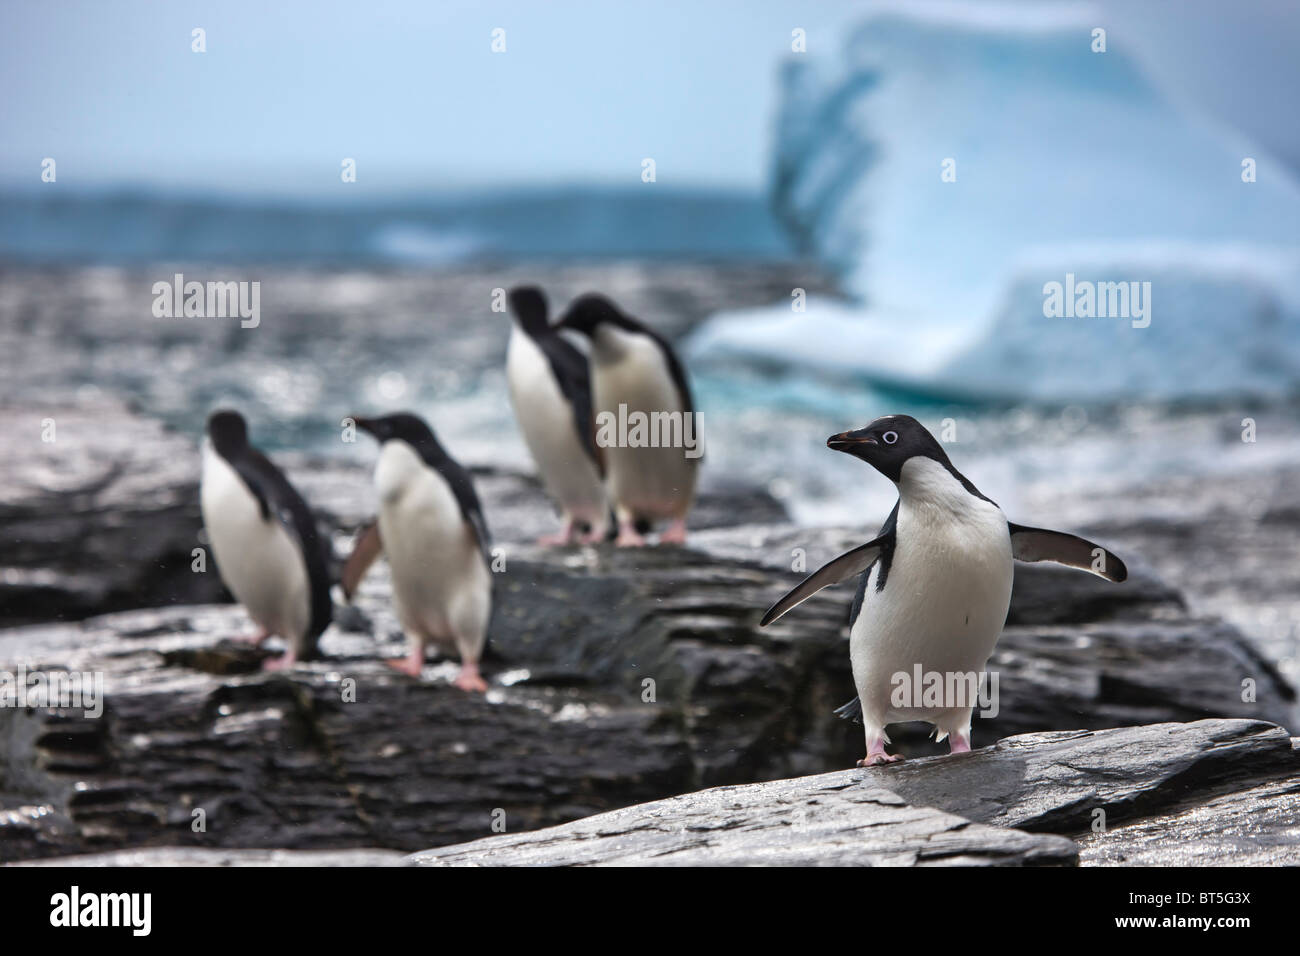 Adelie penguins and icebergs at Shingle Cove, Coronation Island, South Orkney Islands, Southern Ocean - Stock Image